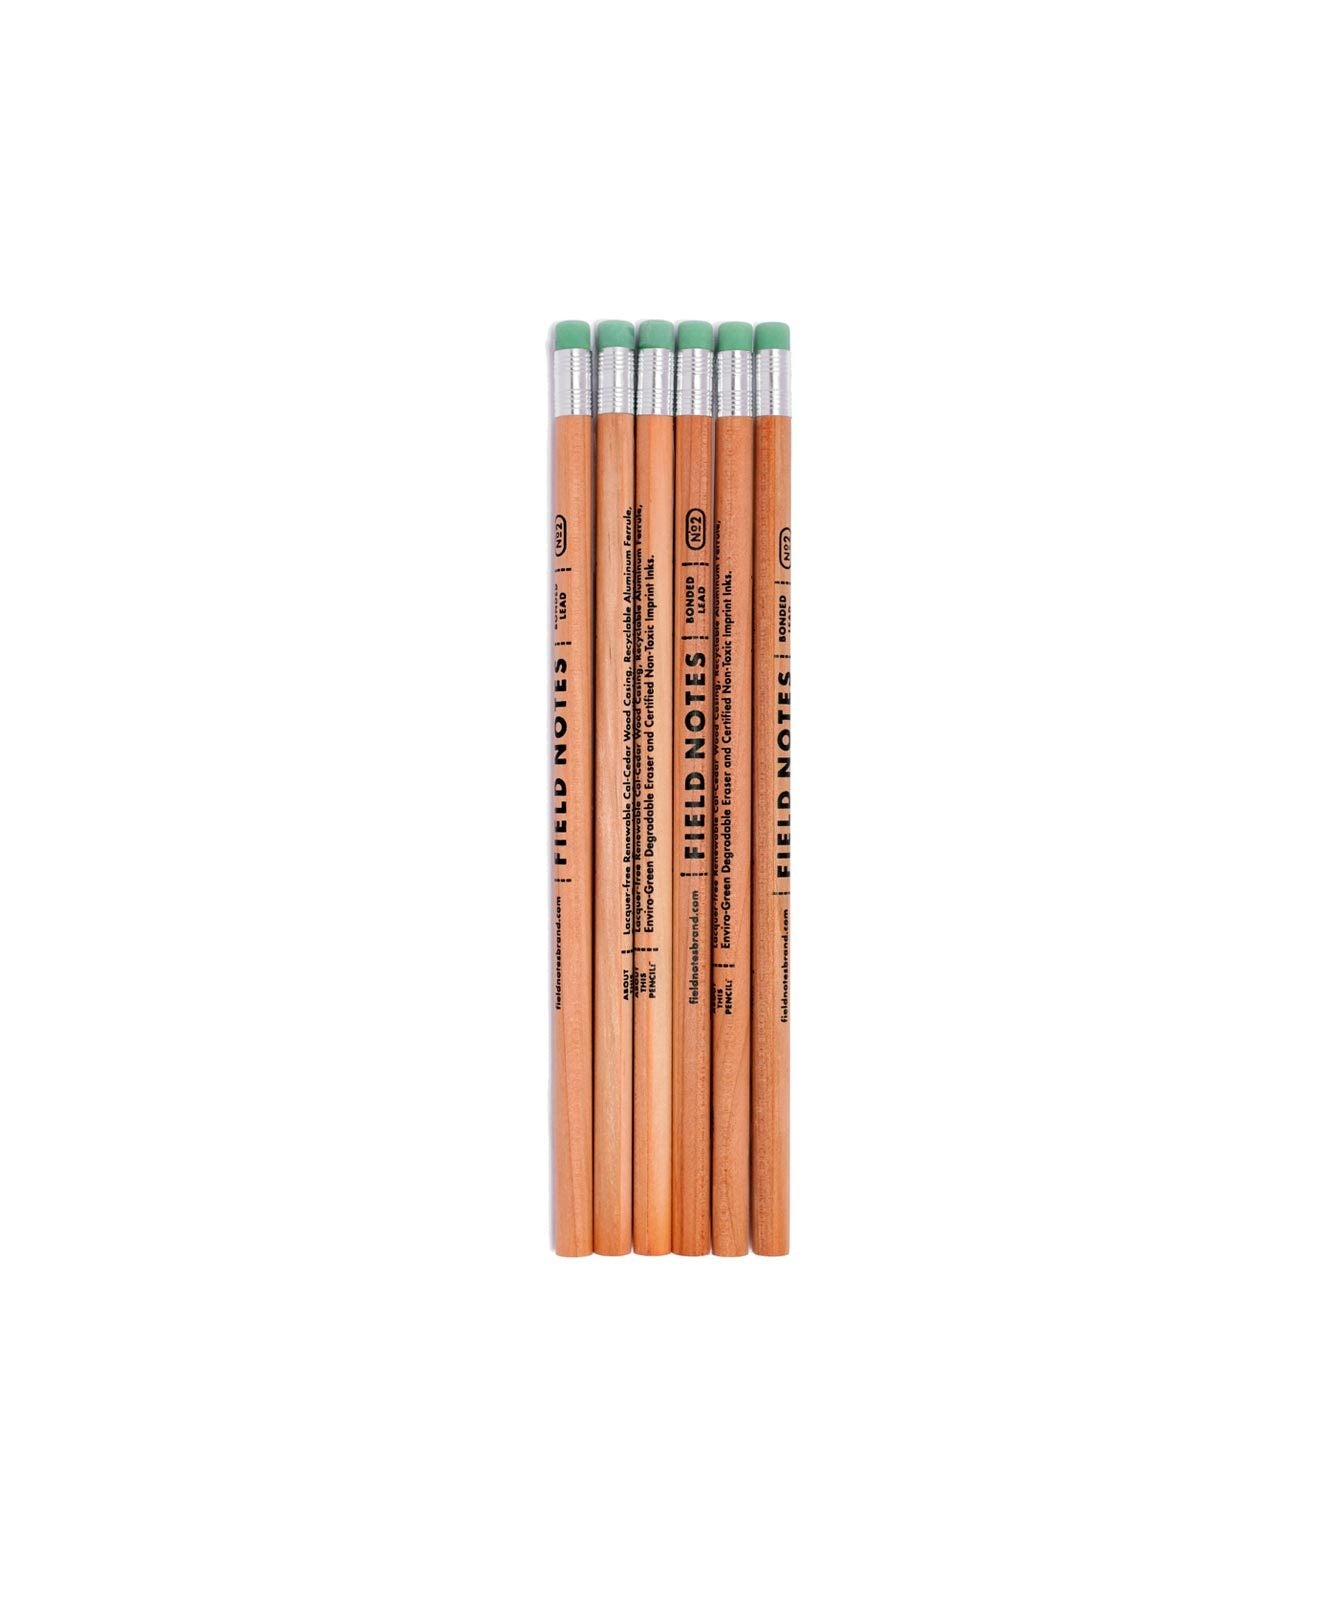 Pencil 6 Packs